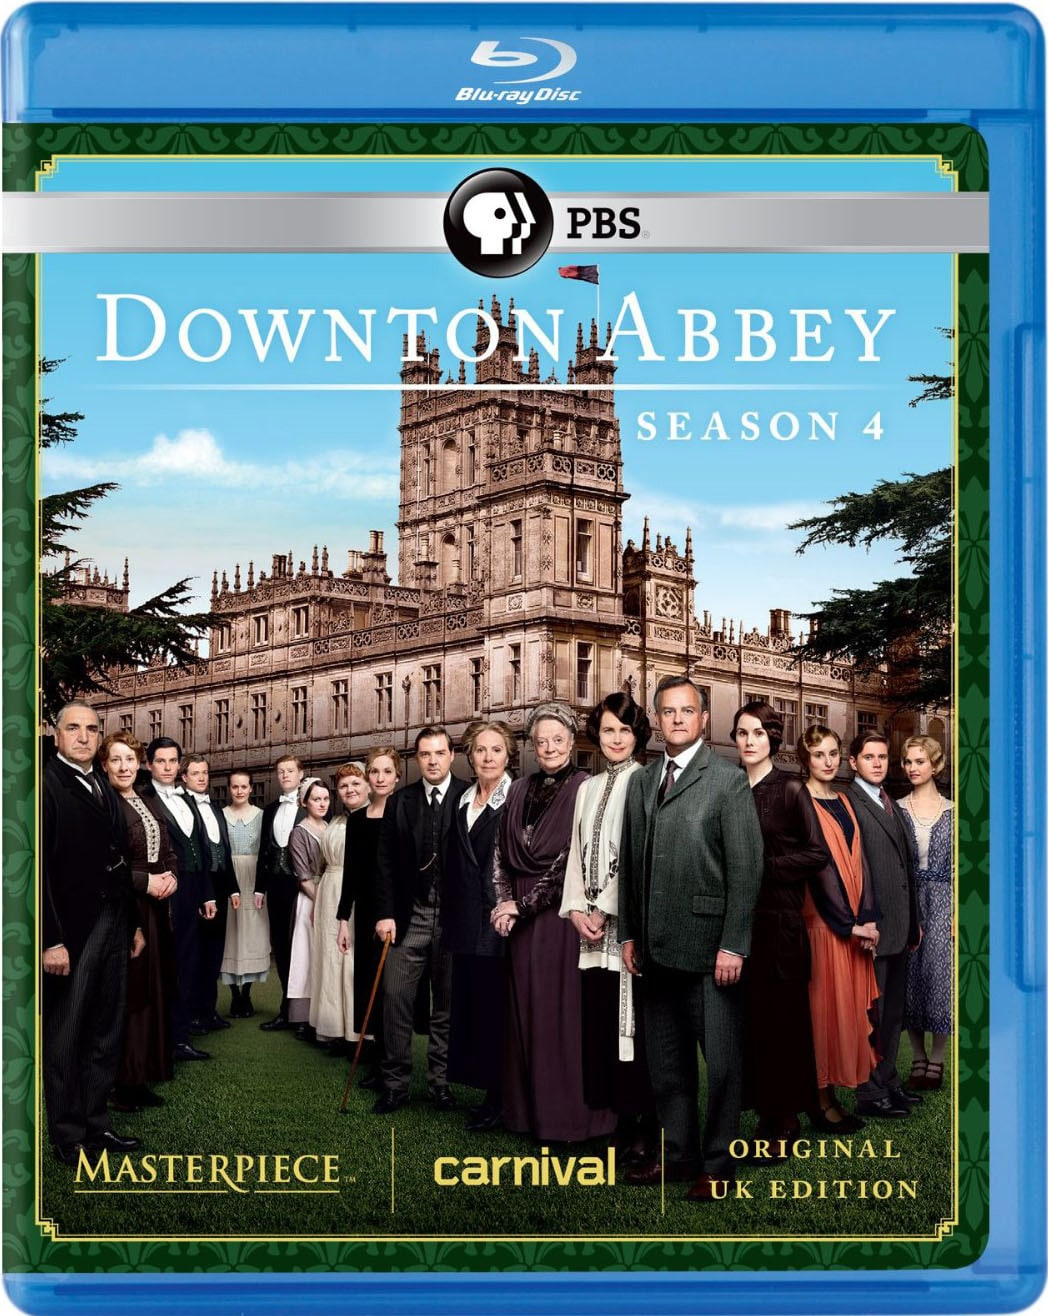 Downton Abbey: Season 4 (Blu-ray Disc)